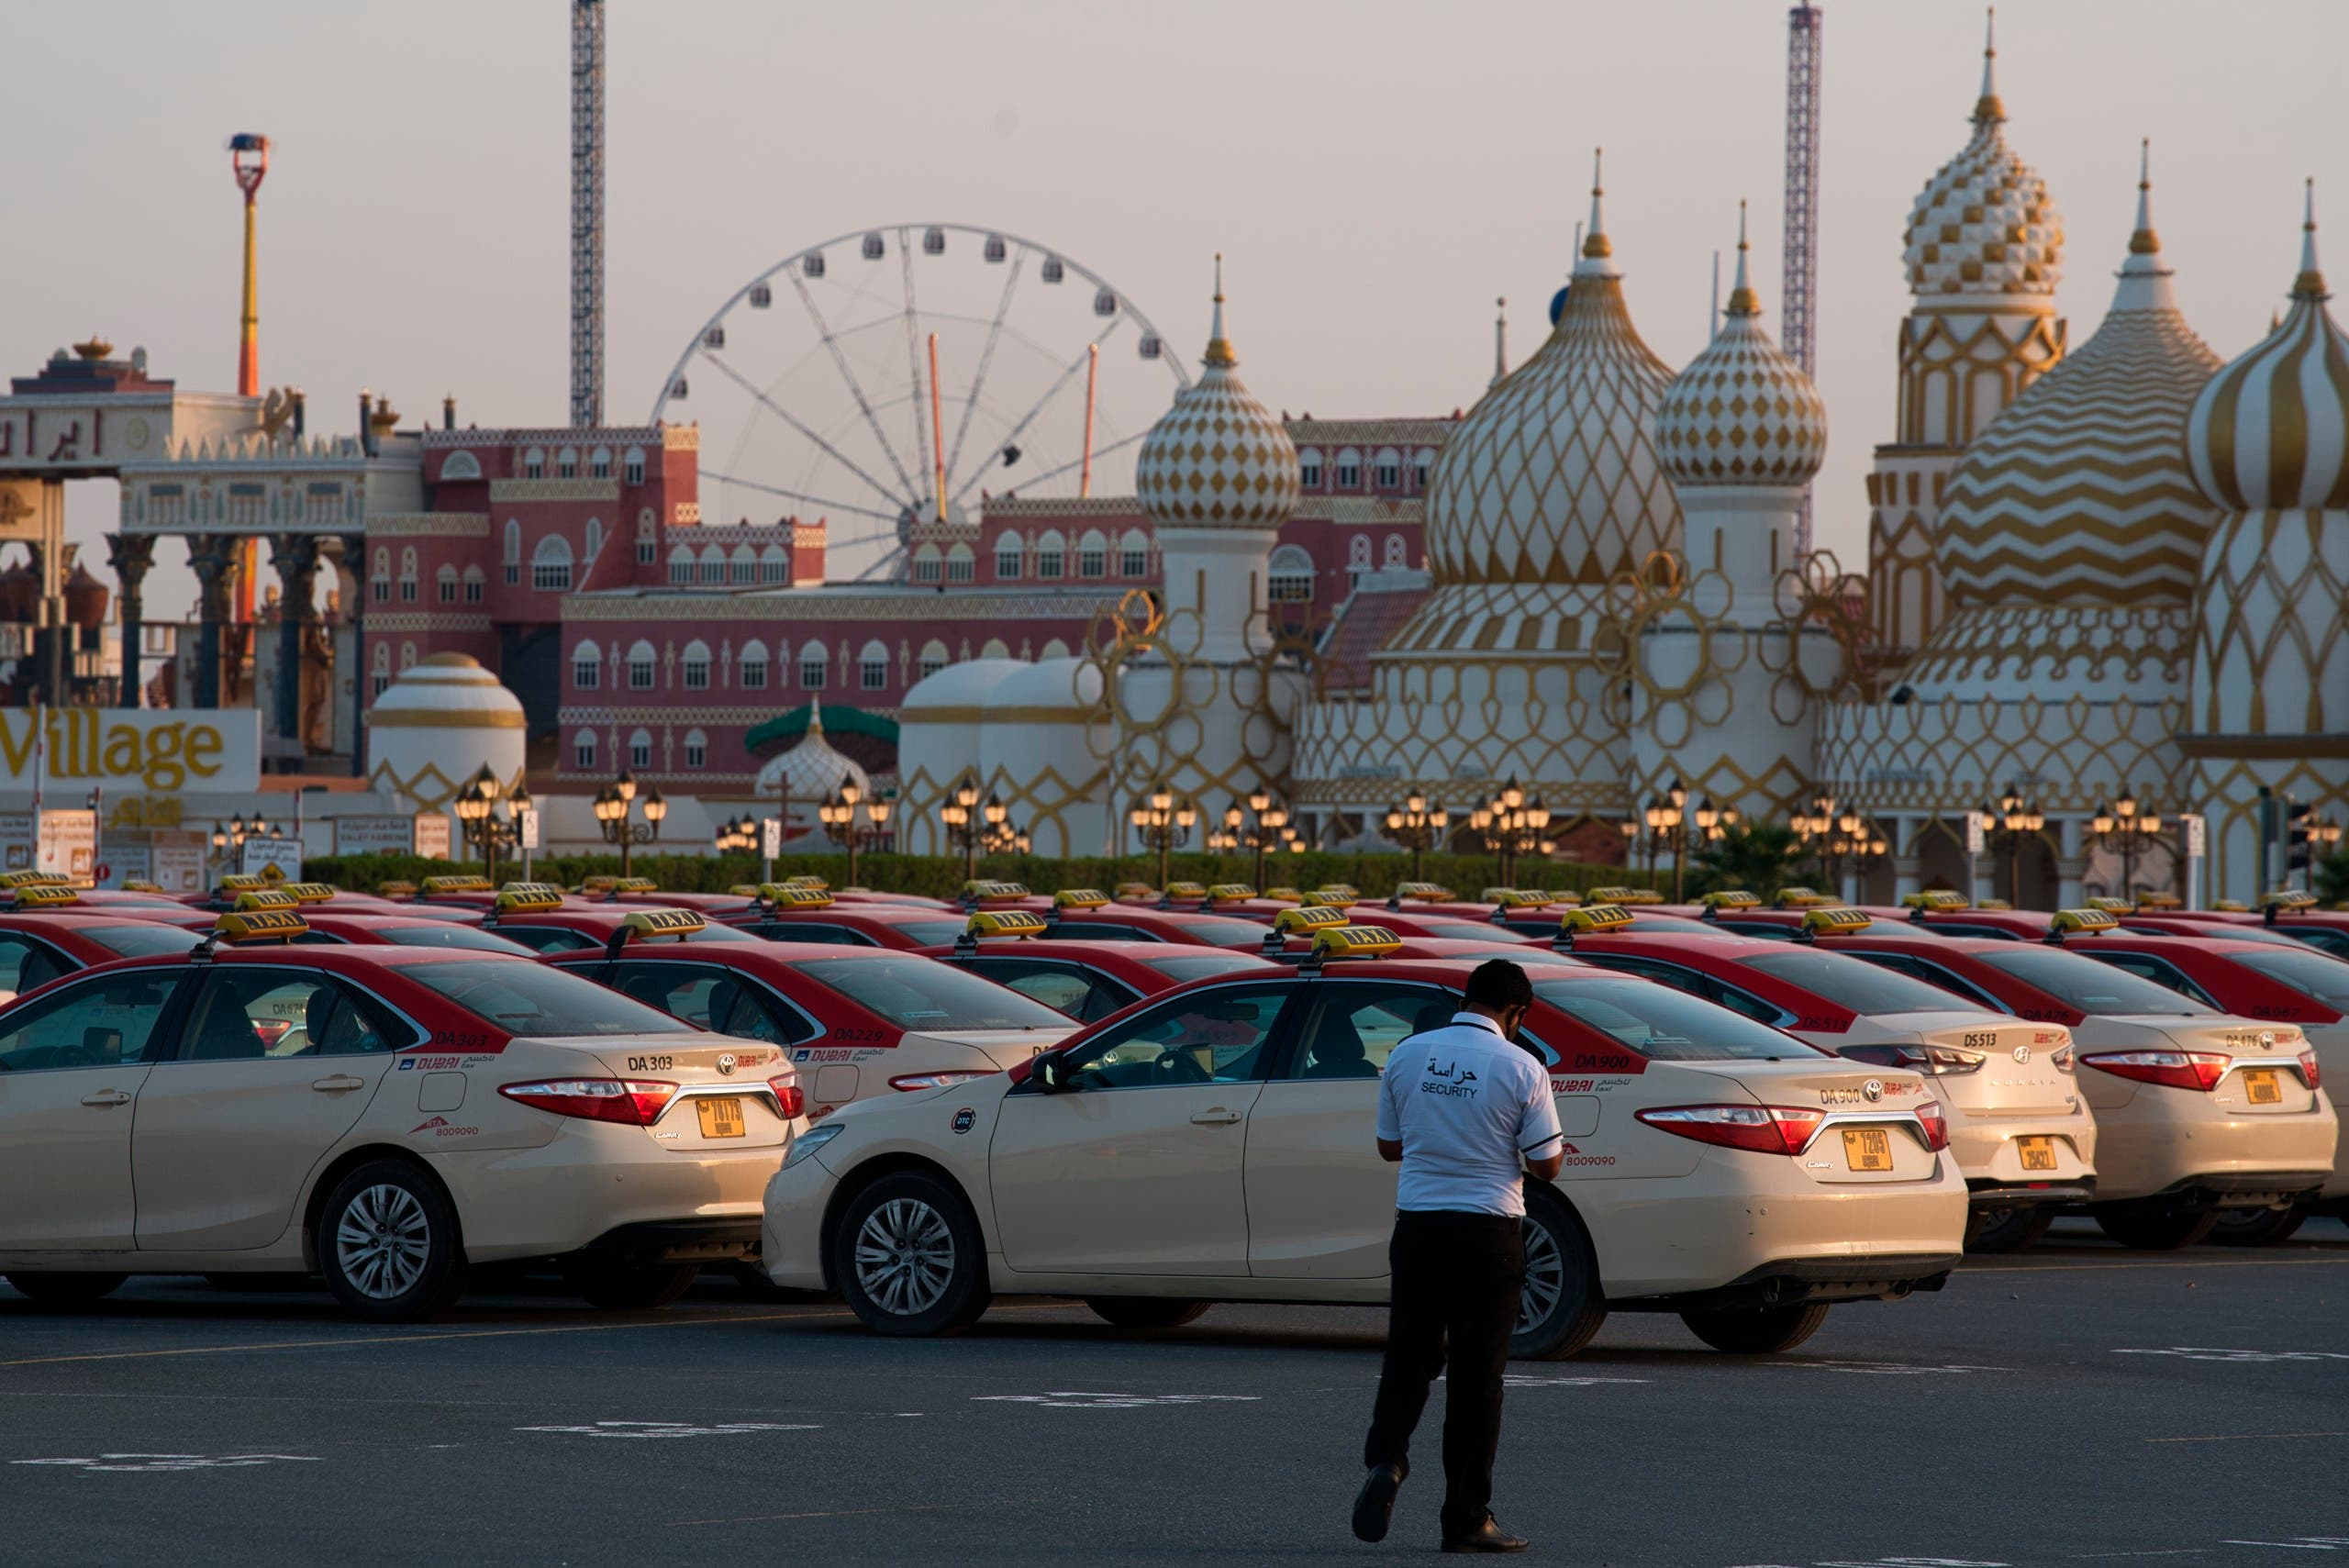 A security guard keeps watch over hundreds of taxi cabs parked at the shopping theme park Global Village in Dubai, United Arab Emirates,  on Tuesday, April 7, 2020.  (AP)